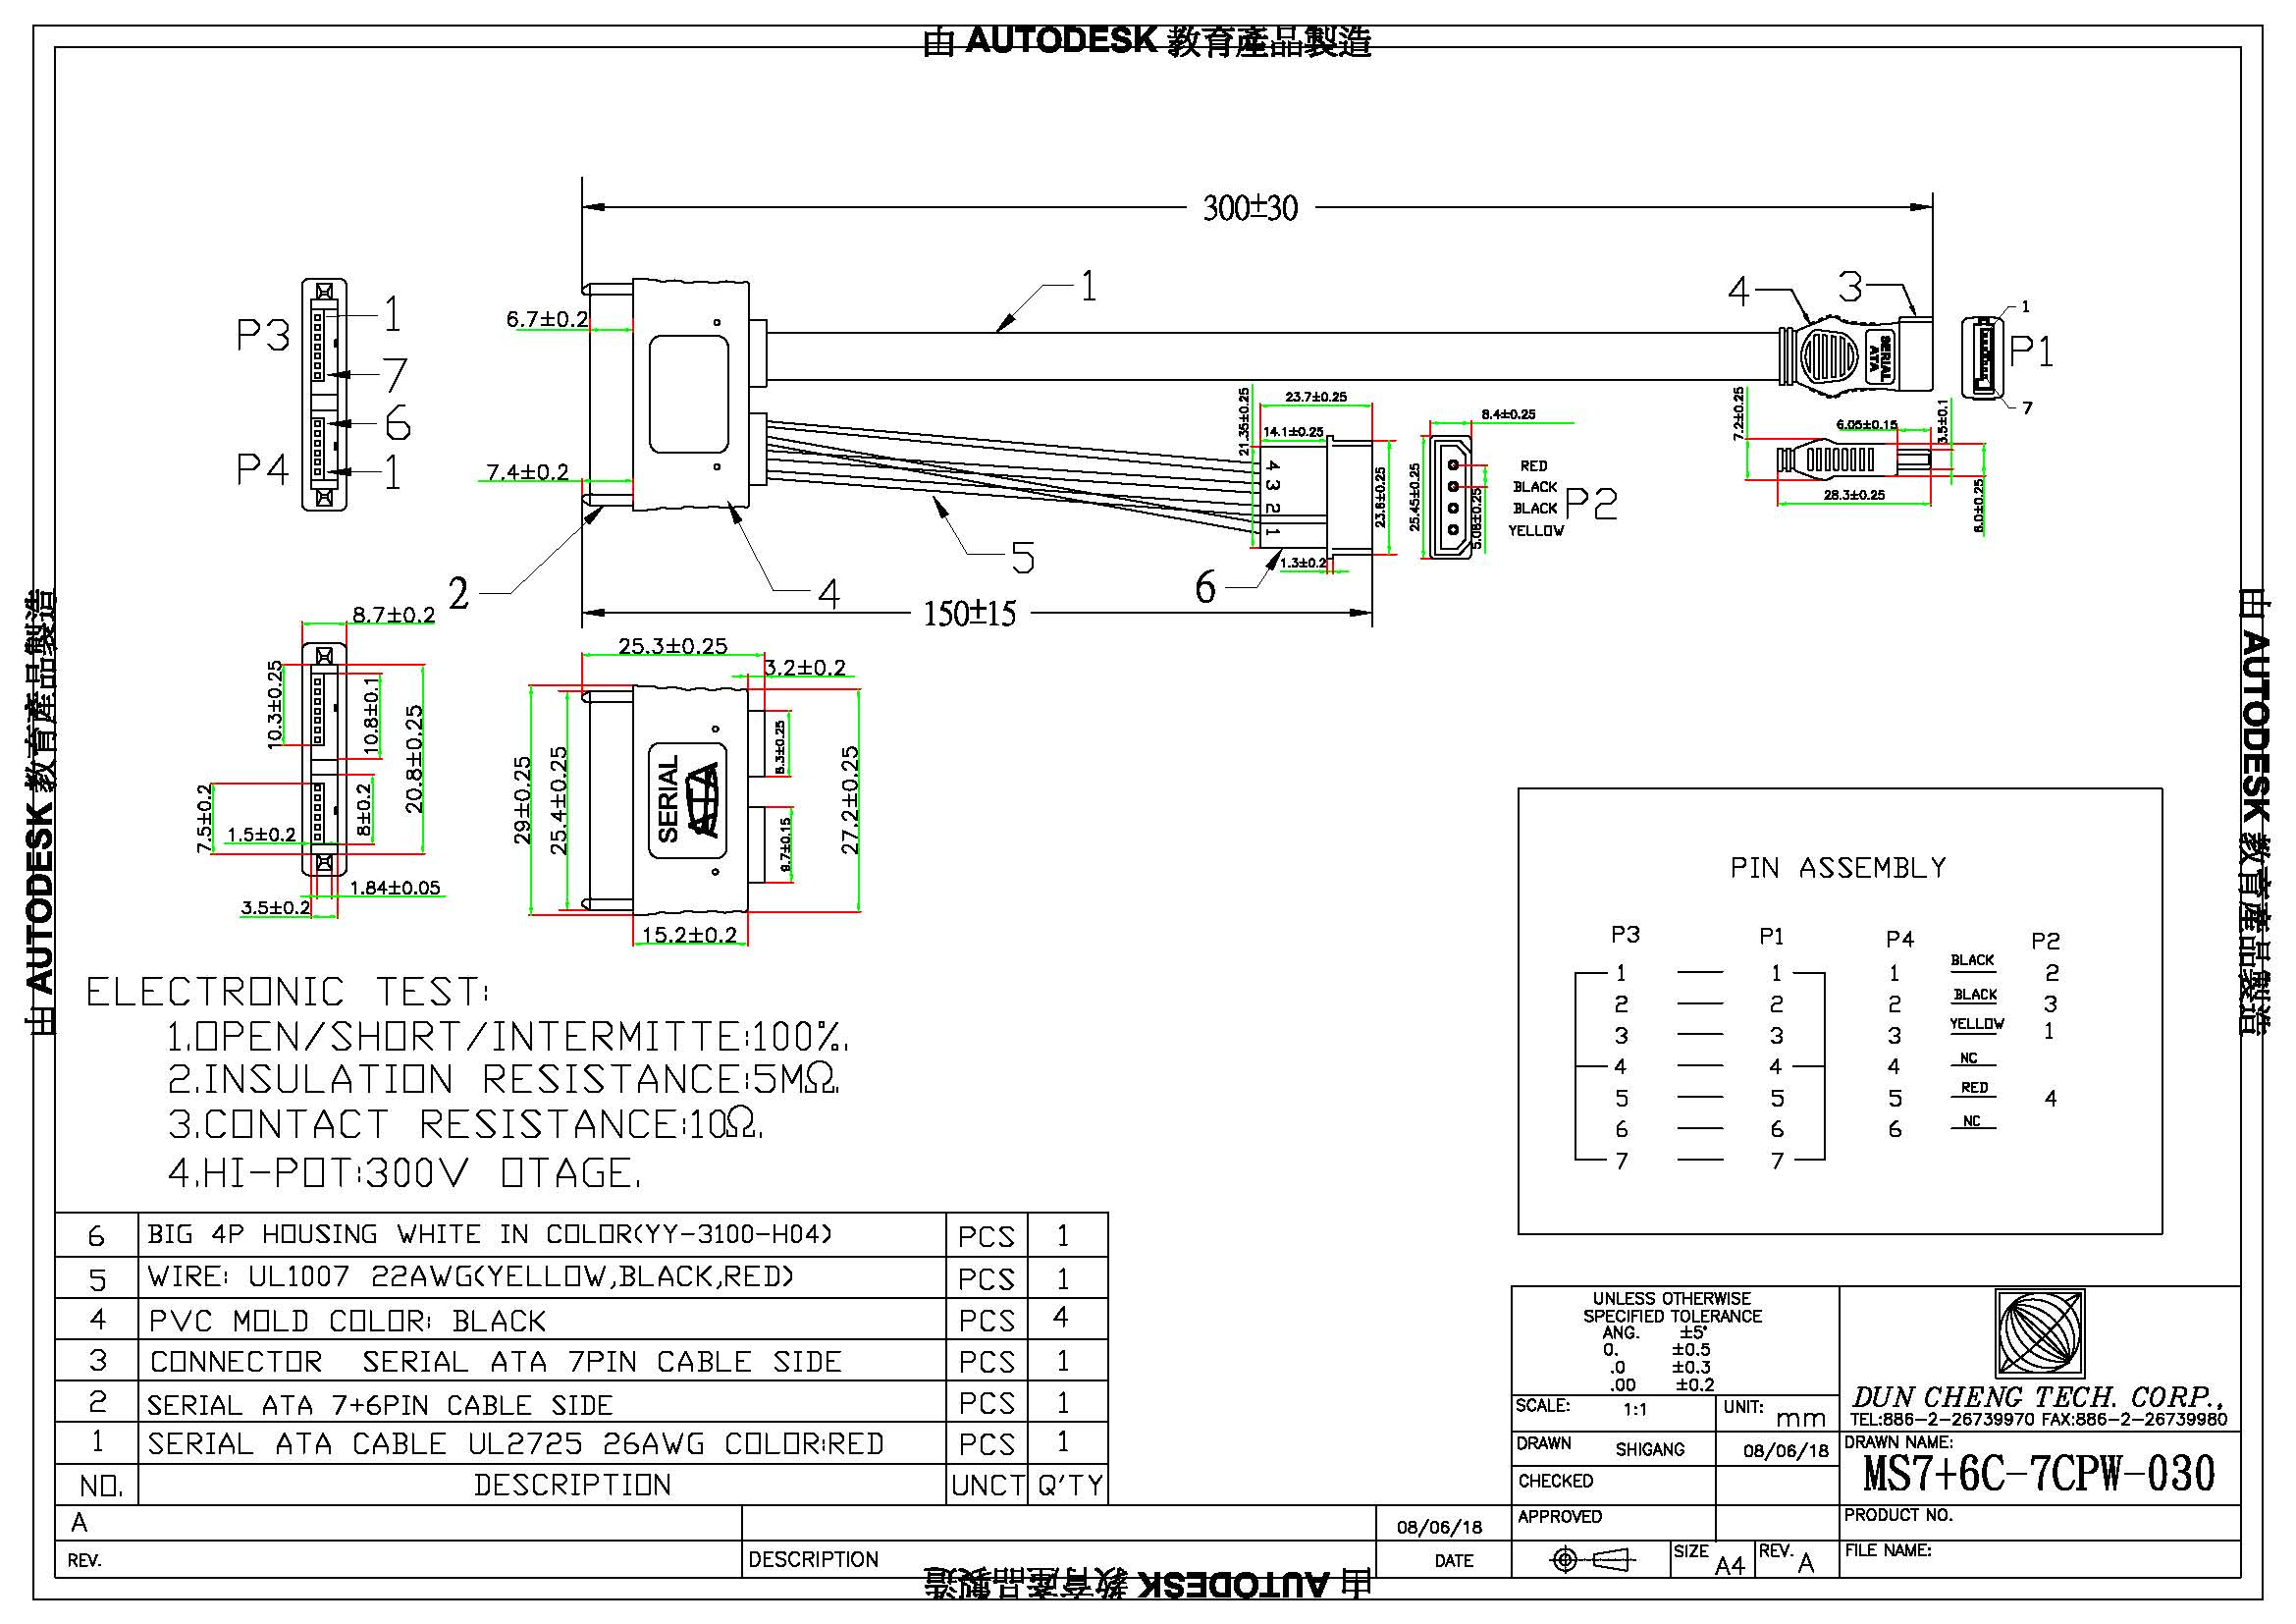 Tremendous Sata Usb Adapter Wire Diagram Wiring Diagram Wiring 101 Taclepimsautoservicenl